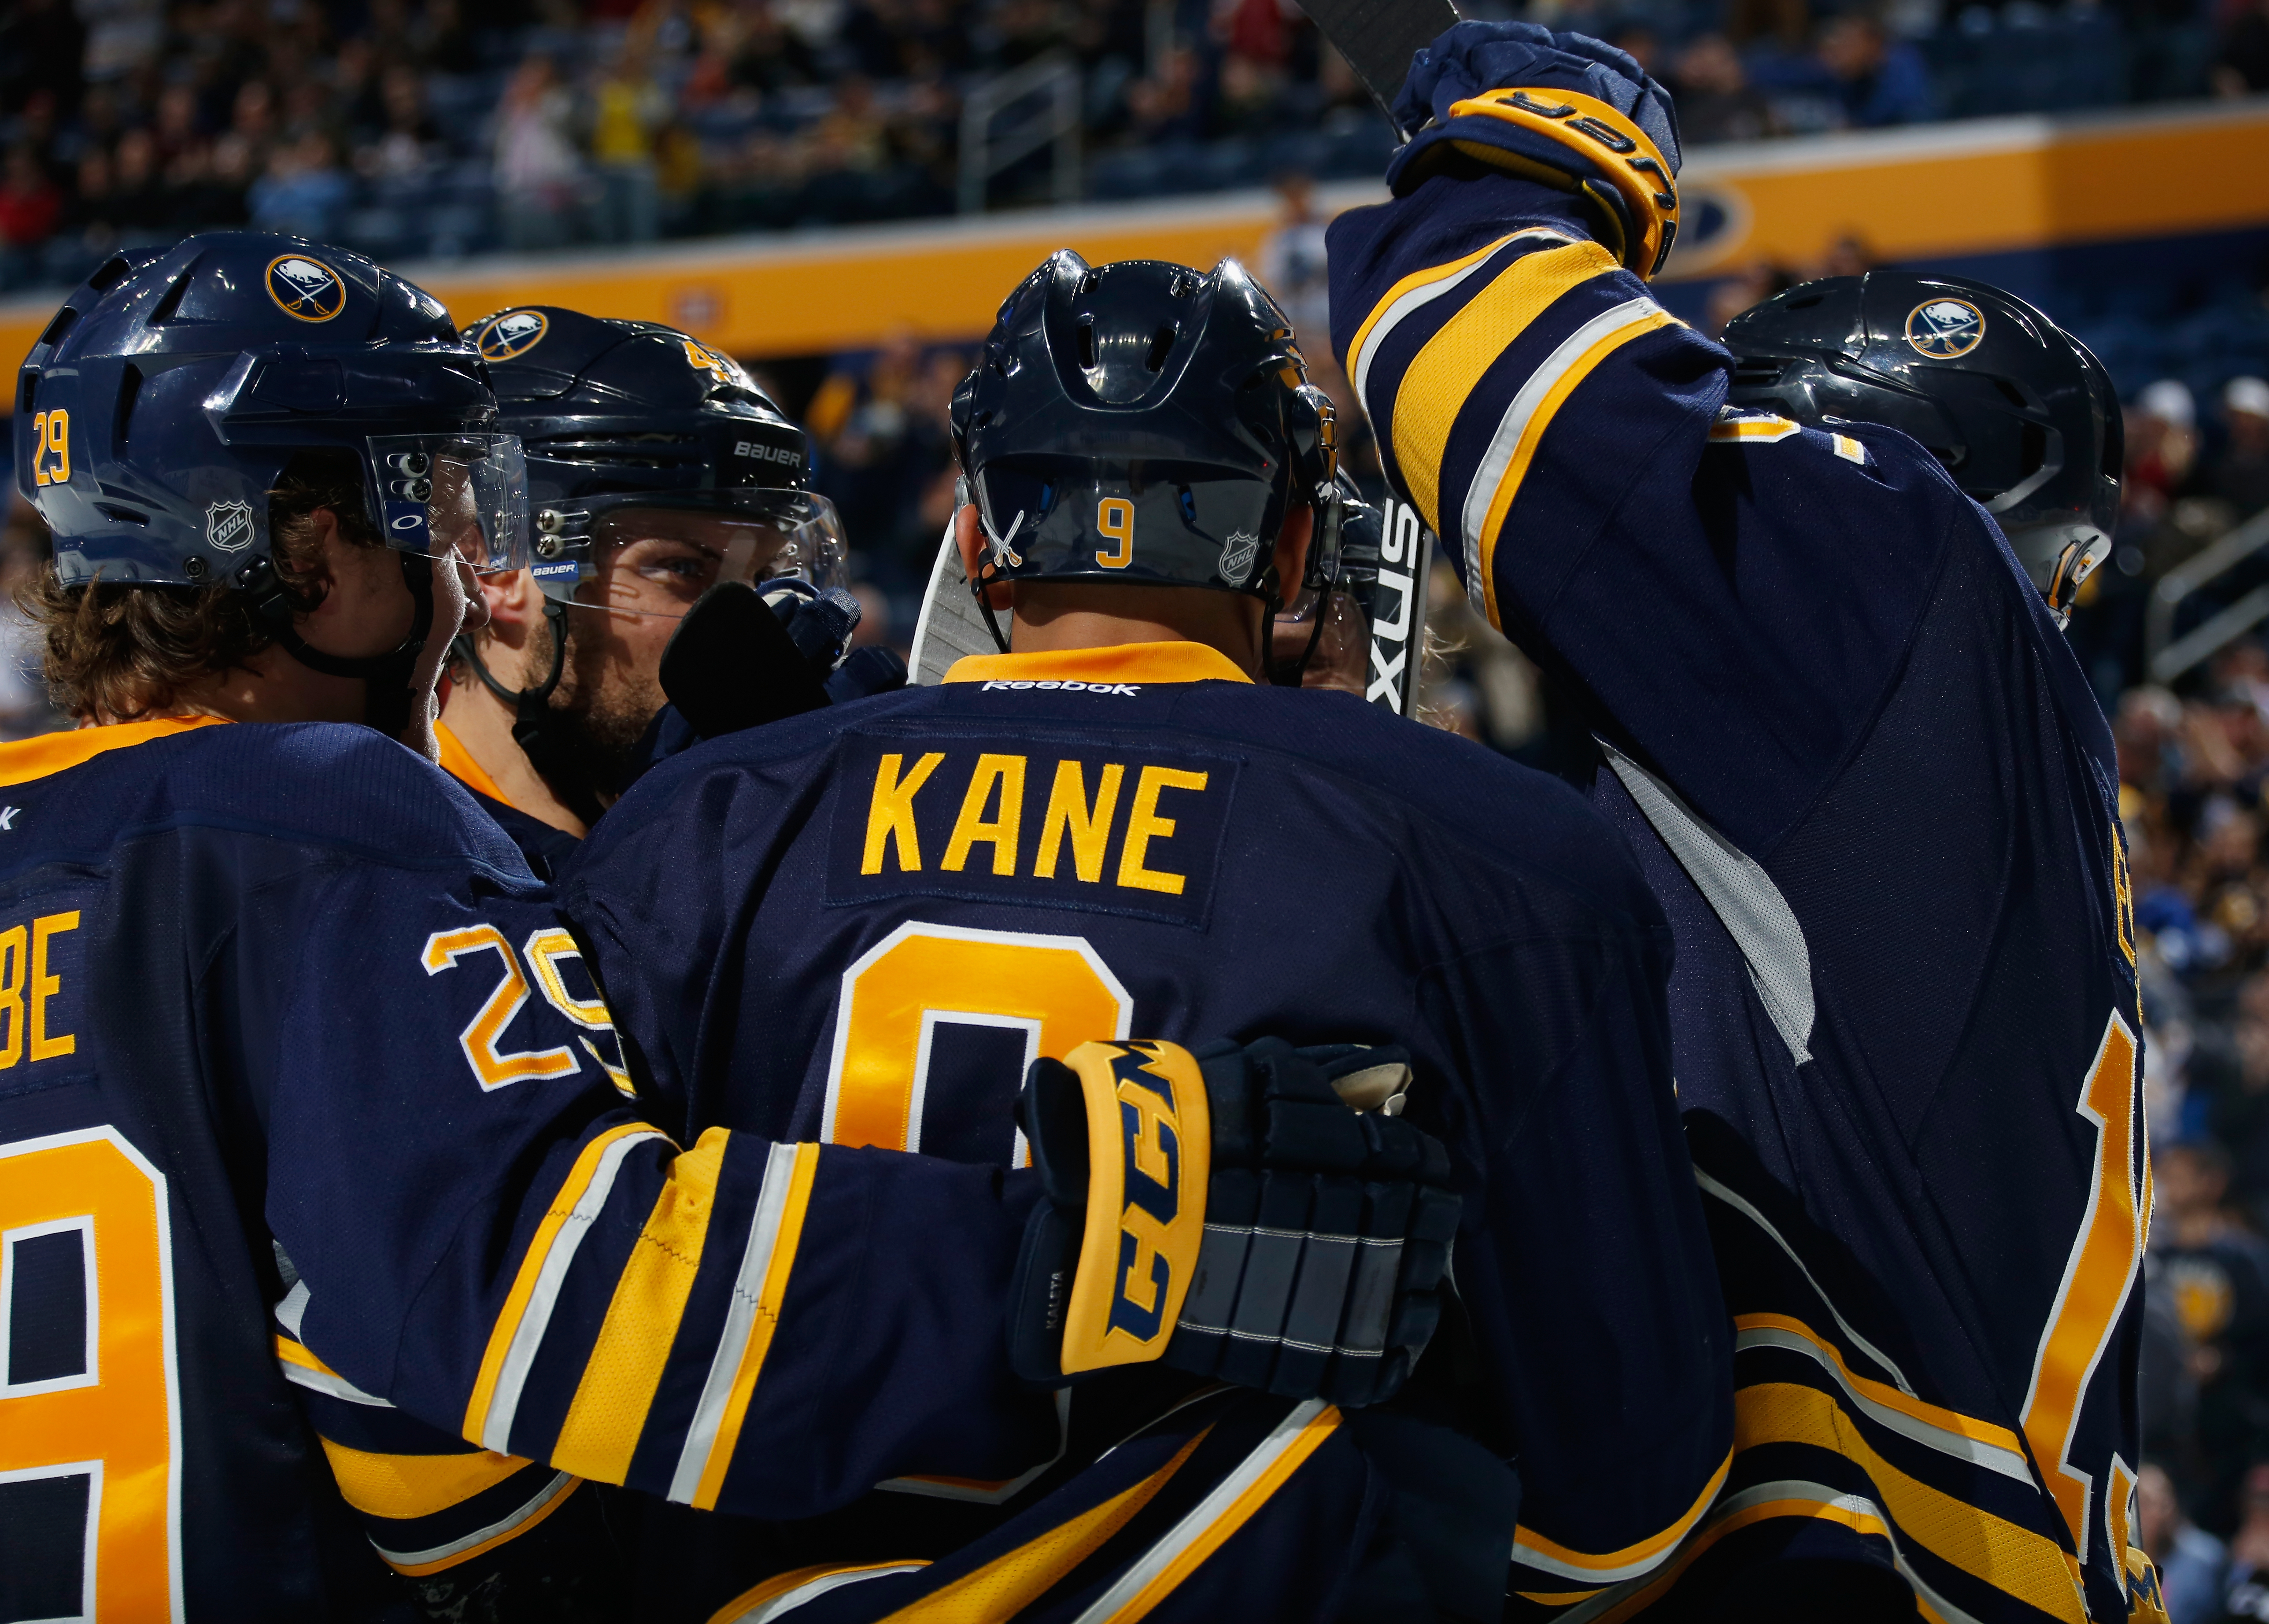 BUFFALO, NY - DECEMBER 17: Evander Kane #9 of the Buffalo Sabres celebrates his goal against the Anaheim Ducks with teammates at First Niagara Center on December 17, 2015 in Buffalo, New York. Buffalo defeated Anaheim 3-0.